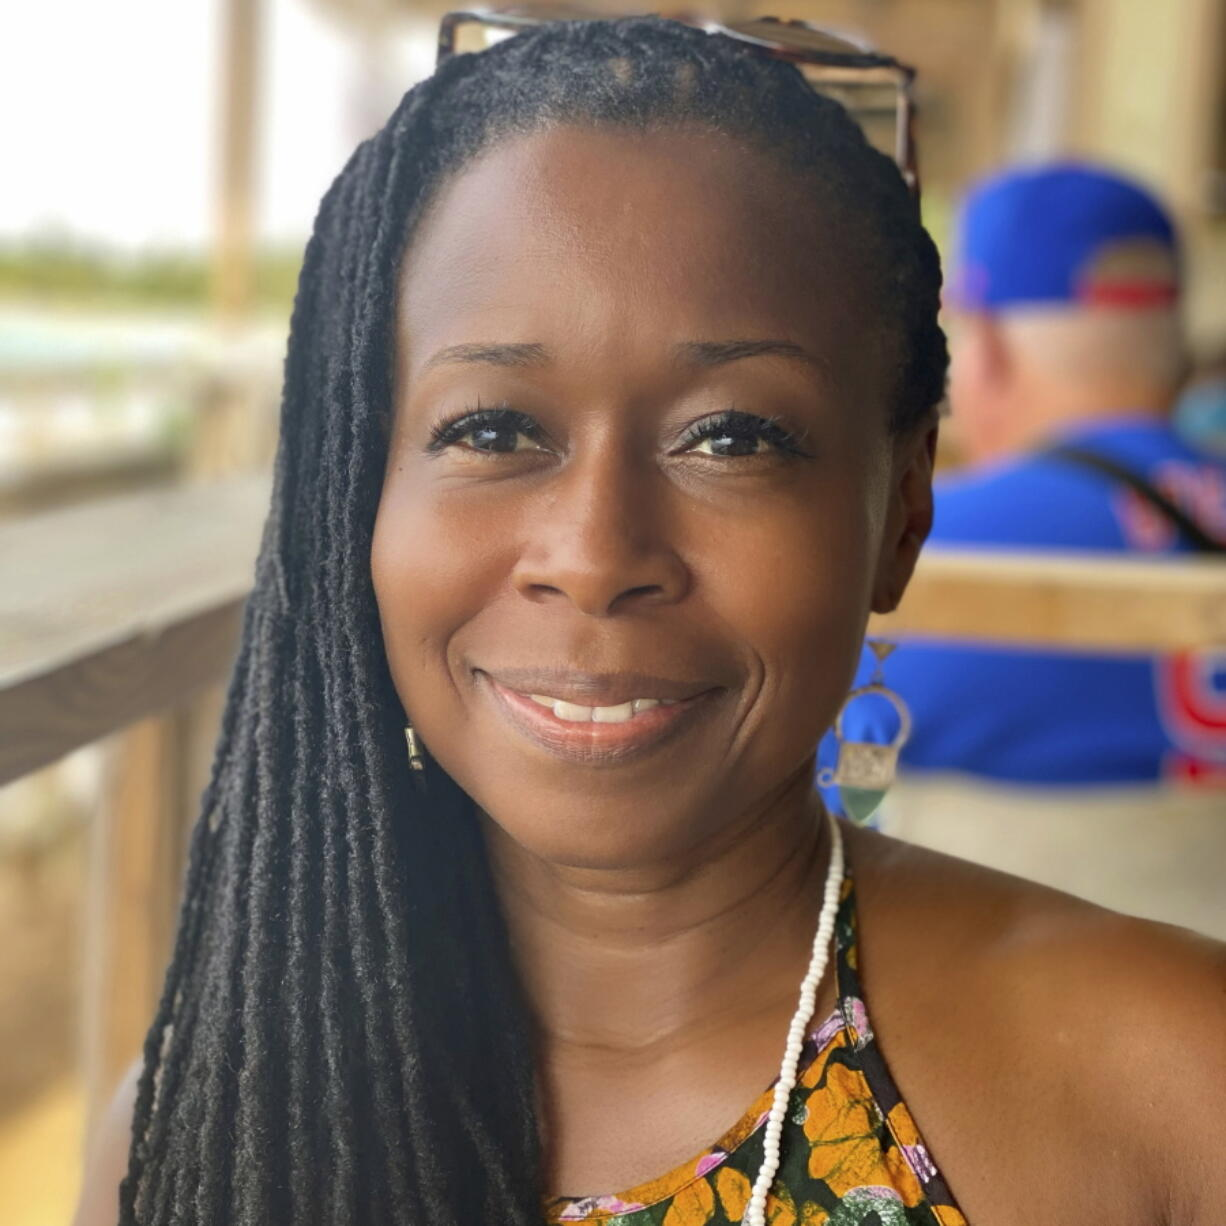 """This 2021 selfie photo shows Monifa Bandele. Bandele, who has taken interim leadership of Time's Up, says the organization is undergoing a structural review and will emerge with a new openness and a focus on """"people power,"""" with leadership that includes farm, restaurant and domestic workers."""